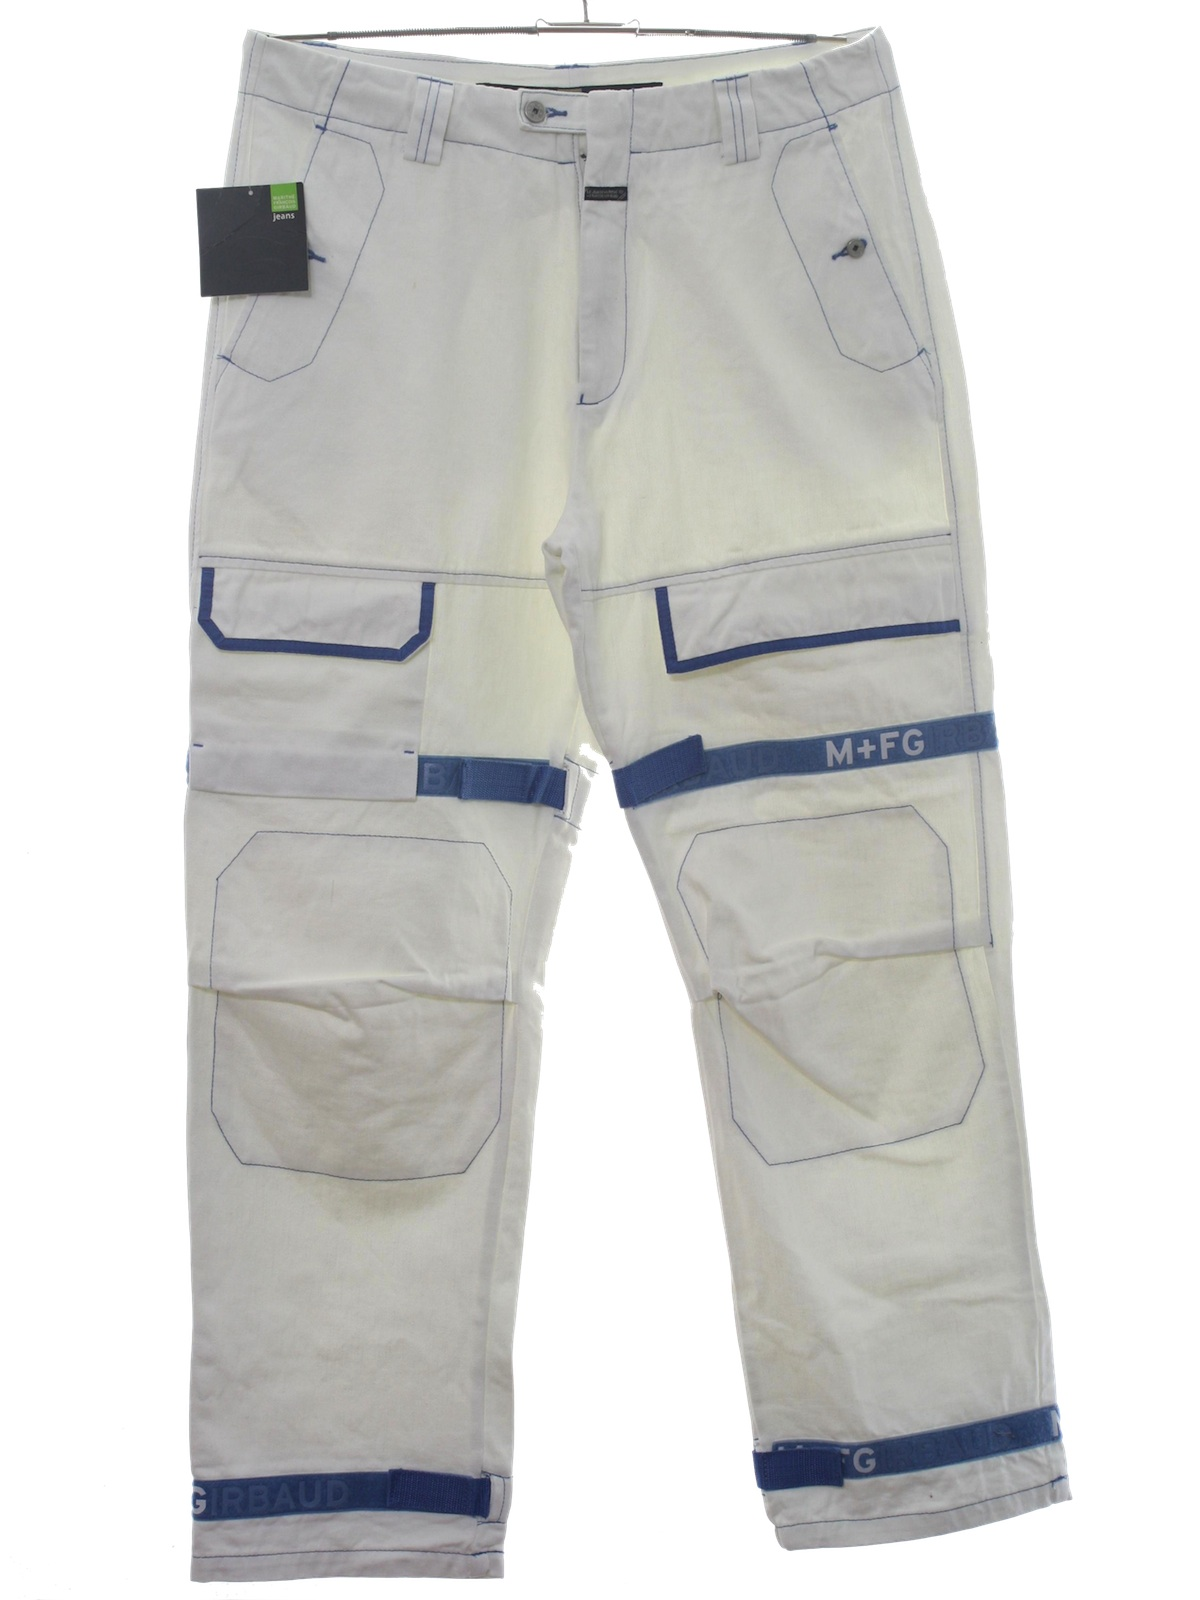 Retro 1990s Pants Late 90s Or Early 2000s Marithe